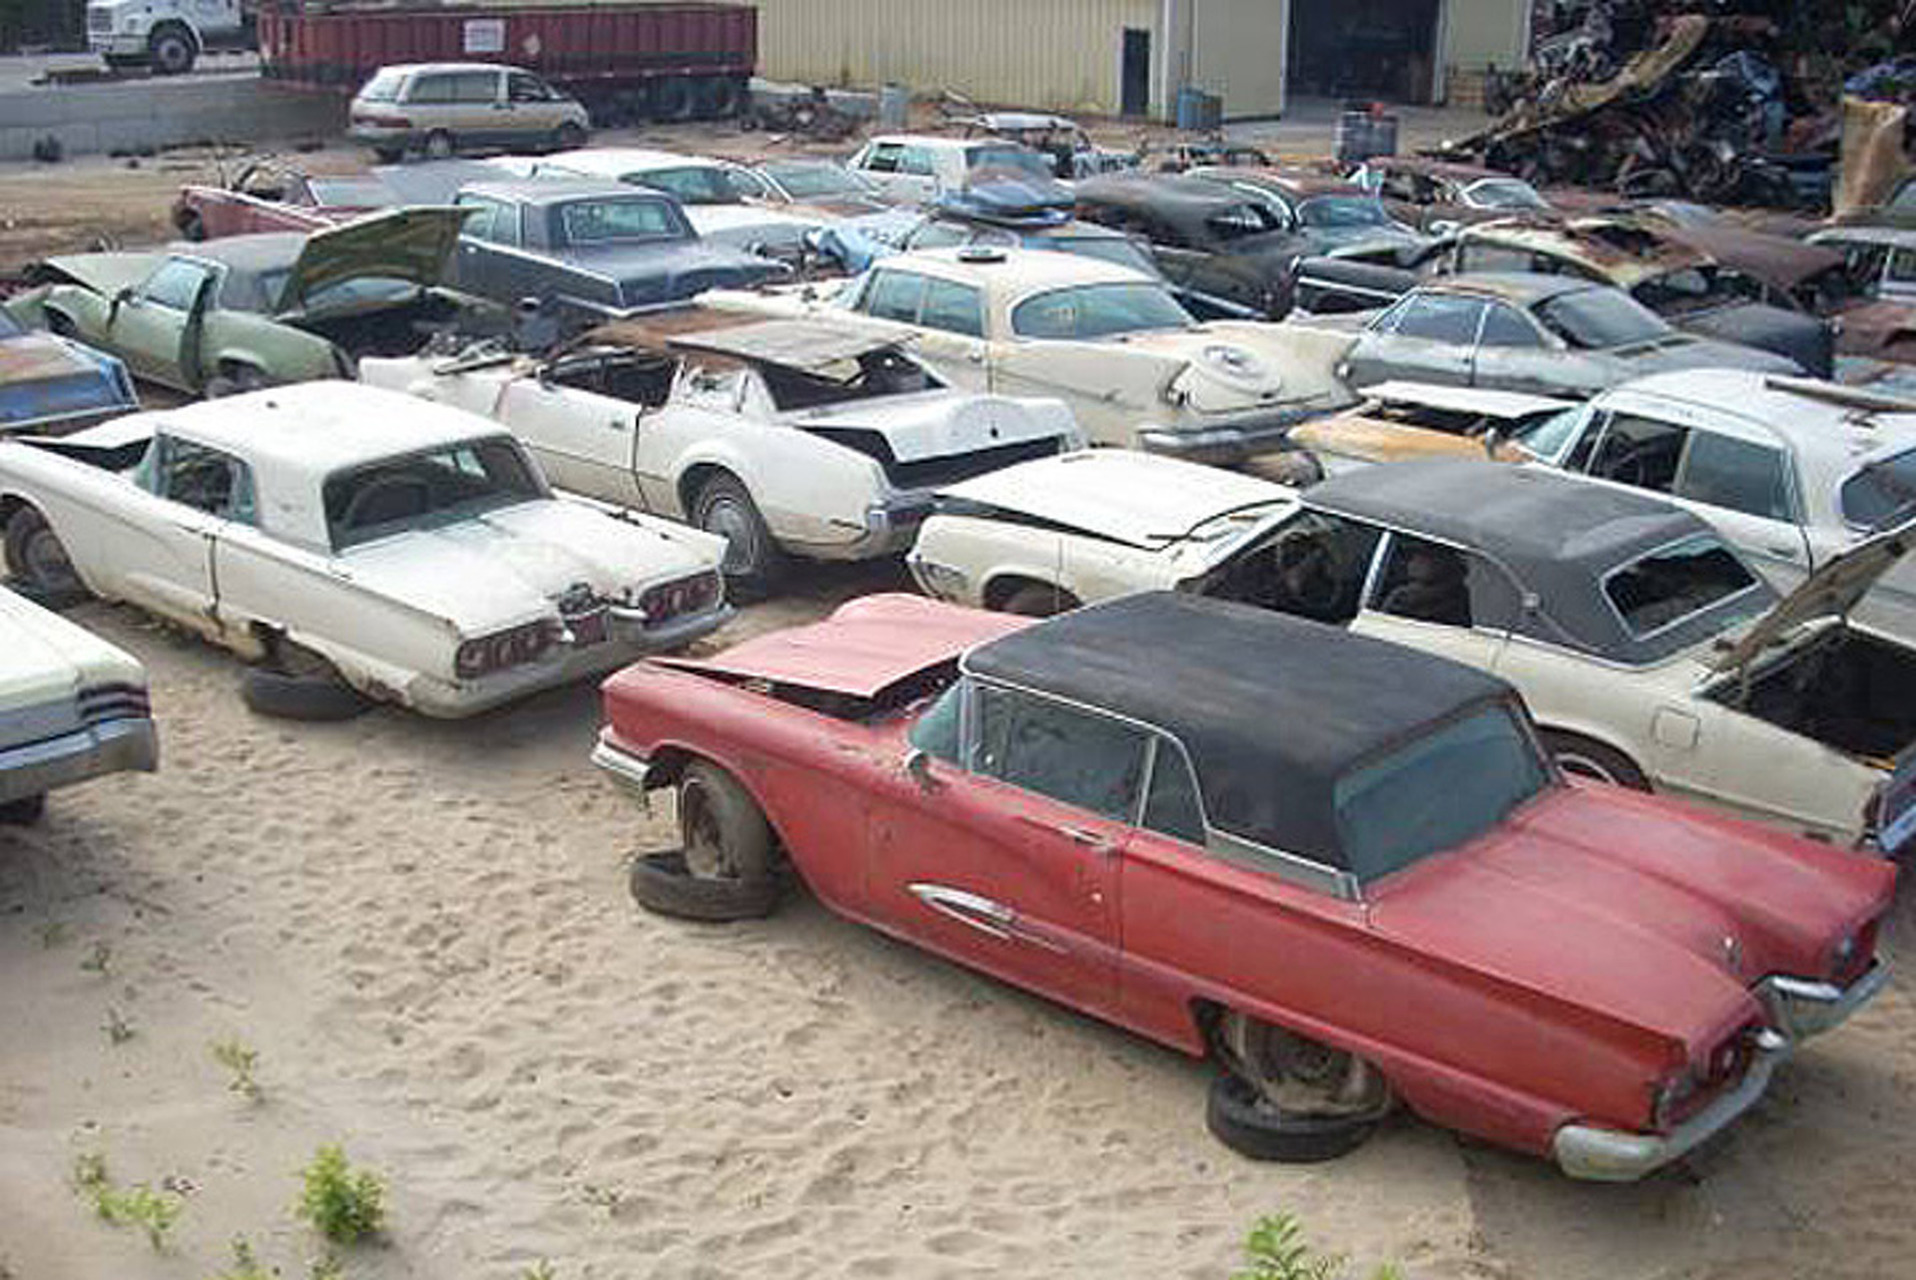 Grab These Classic Junkyard Parts While You Can